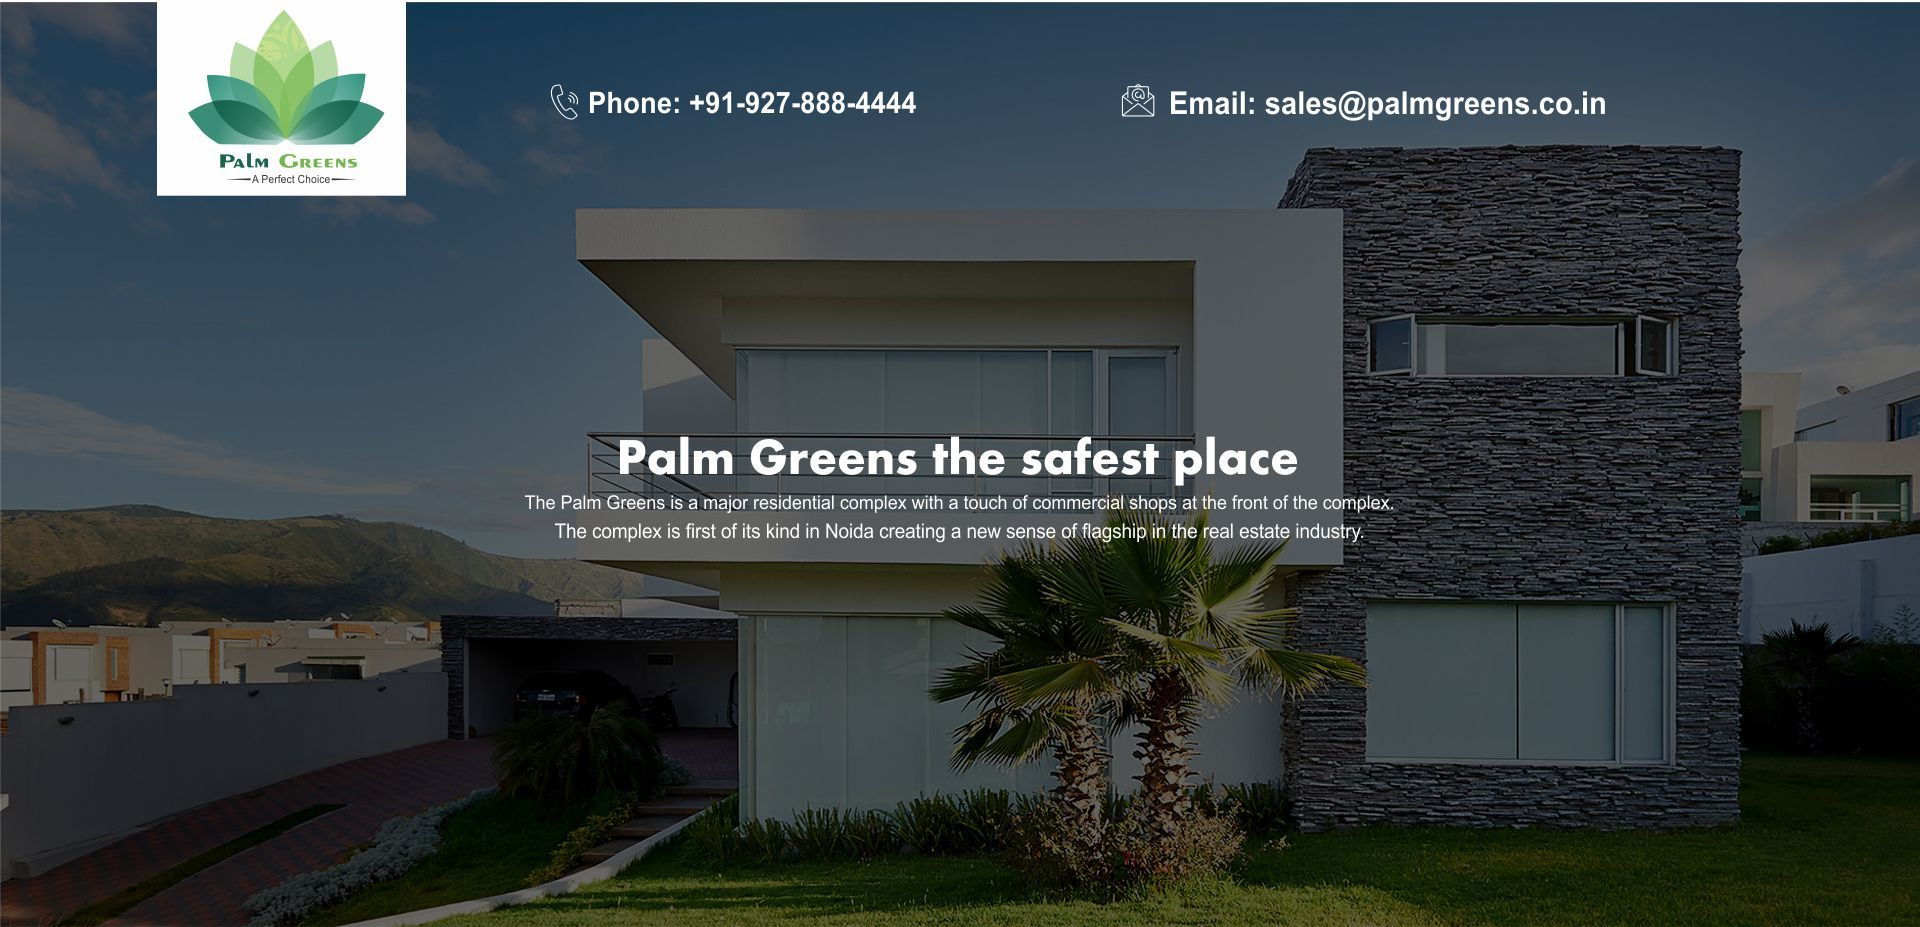 Palm Greens Palm Greens Noida Extension. Real estate